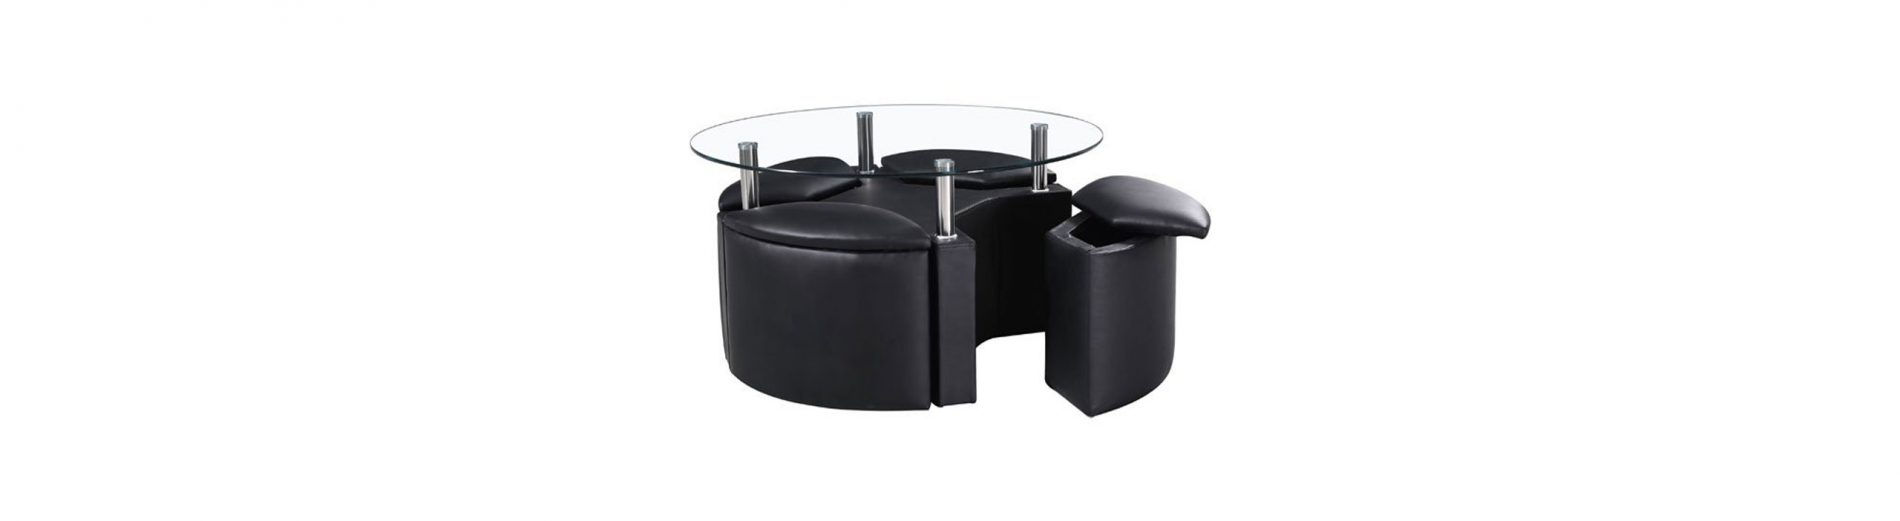 Different Assemblies Of A Round Coffee Table With Storage And The Perks They Offer